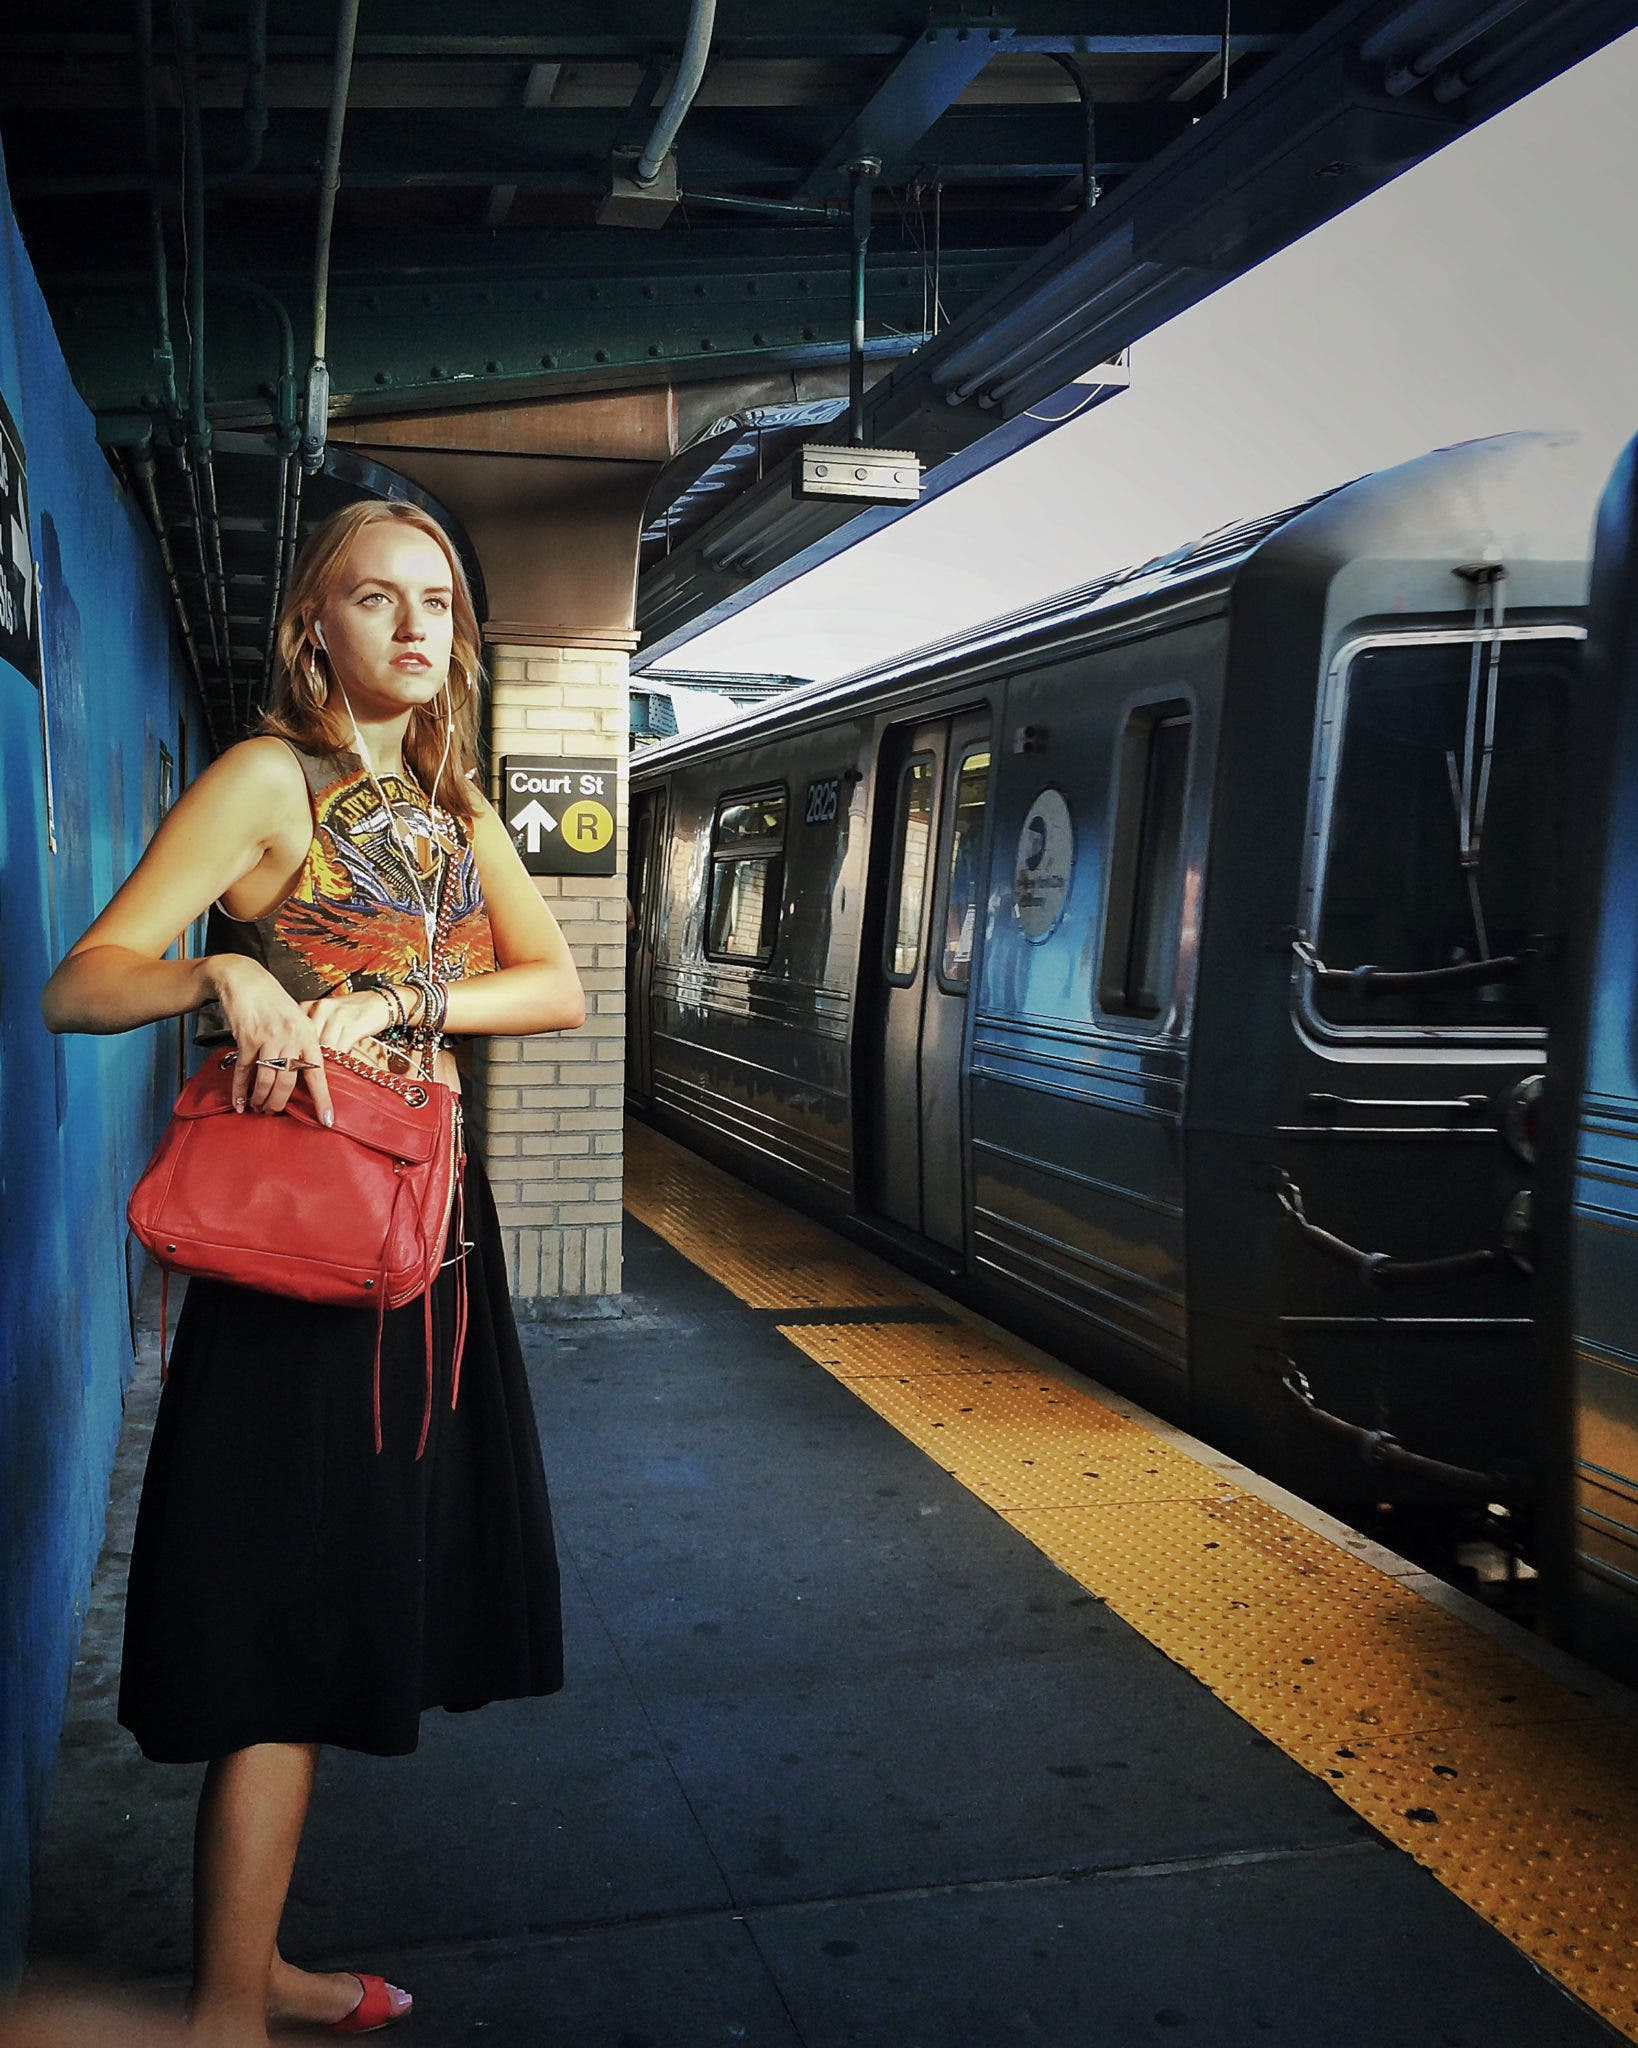 Photojournalist Gretchen Robinette Is Our Next Guest on Inside the Photographer's Mind